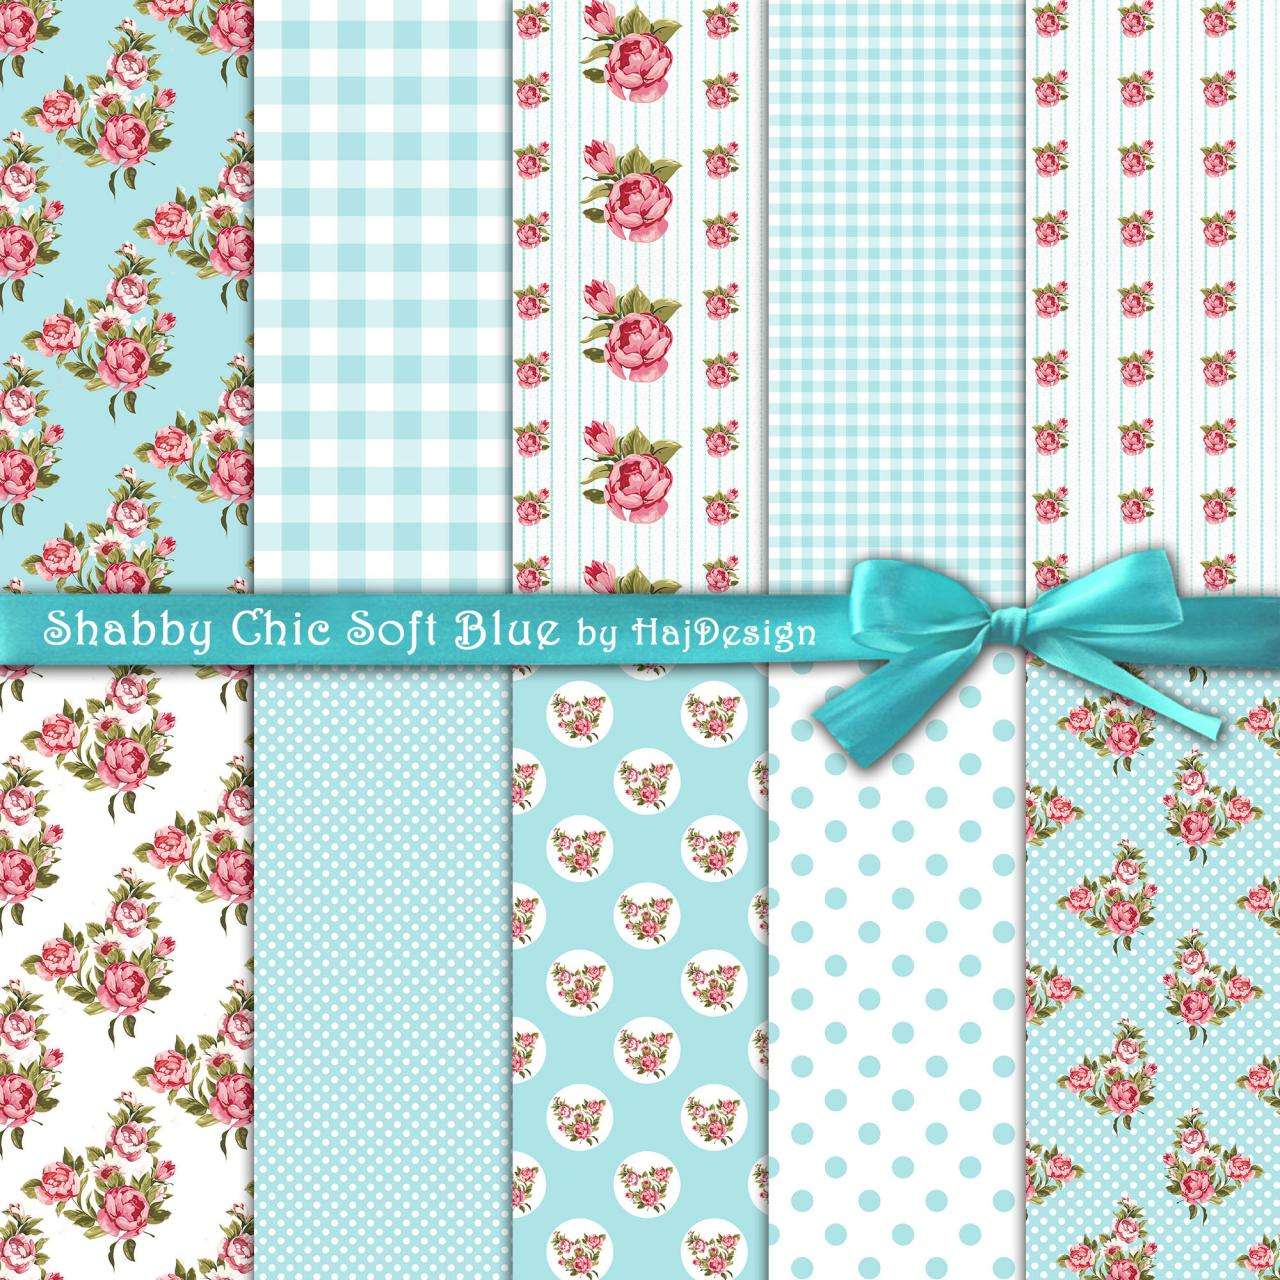 Shabby chic soft blue digital collage sheet digital paper shabby chic soft blue digital collage sheet digital paper decoupage paper shabby jeuxipadfo Image collections